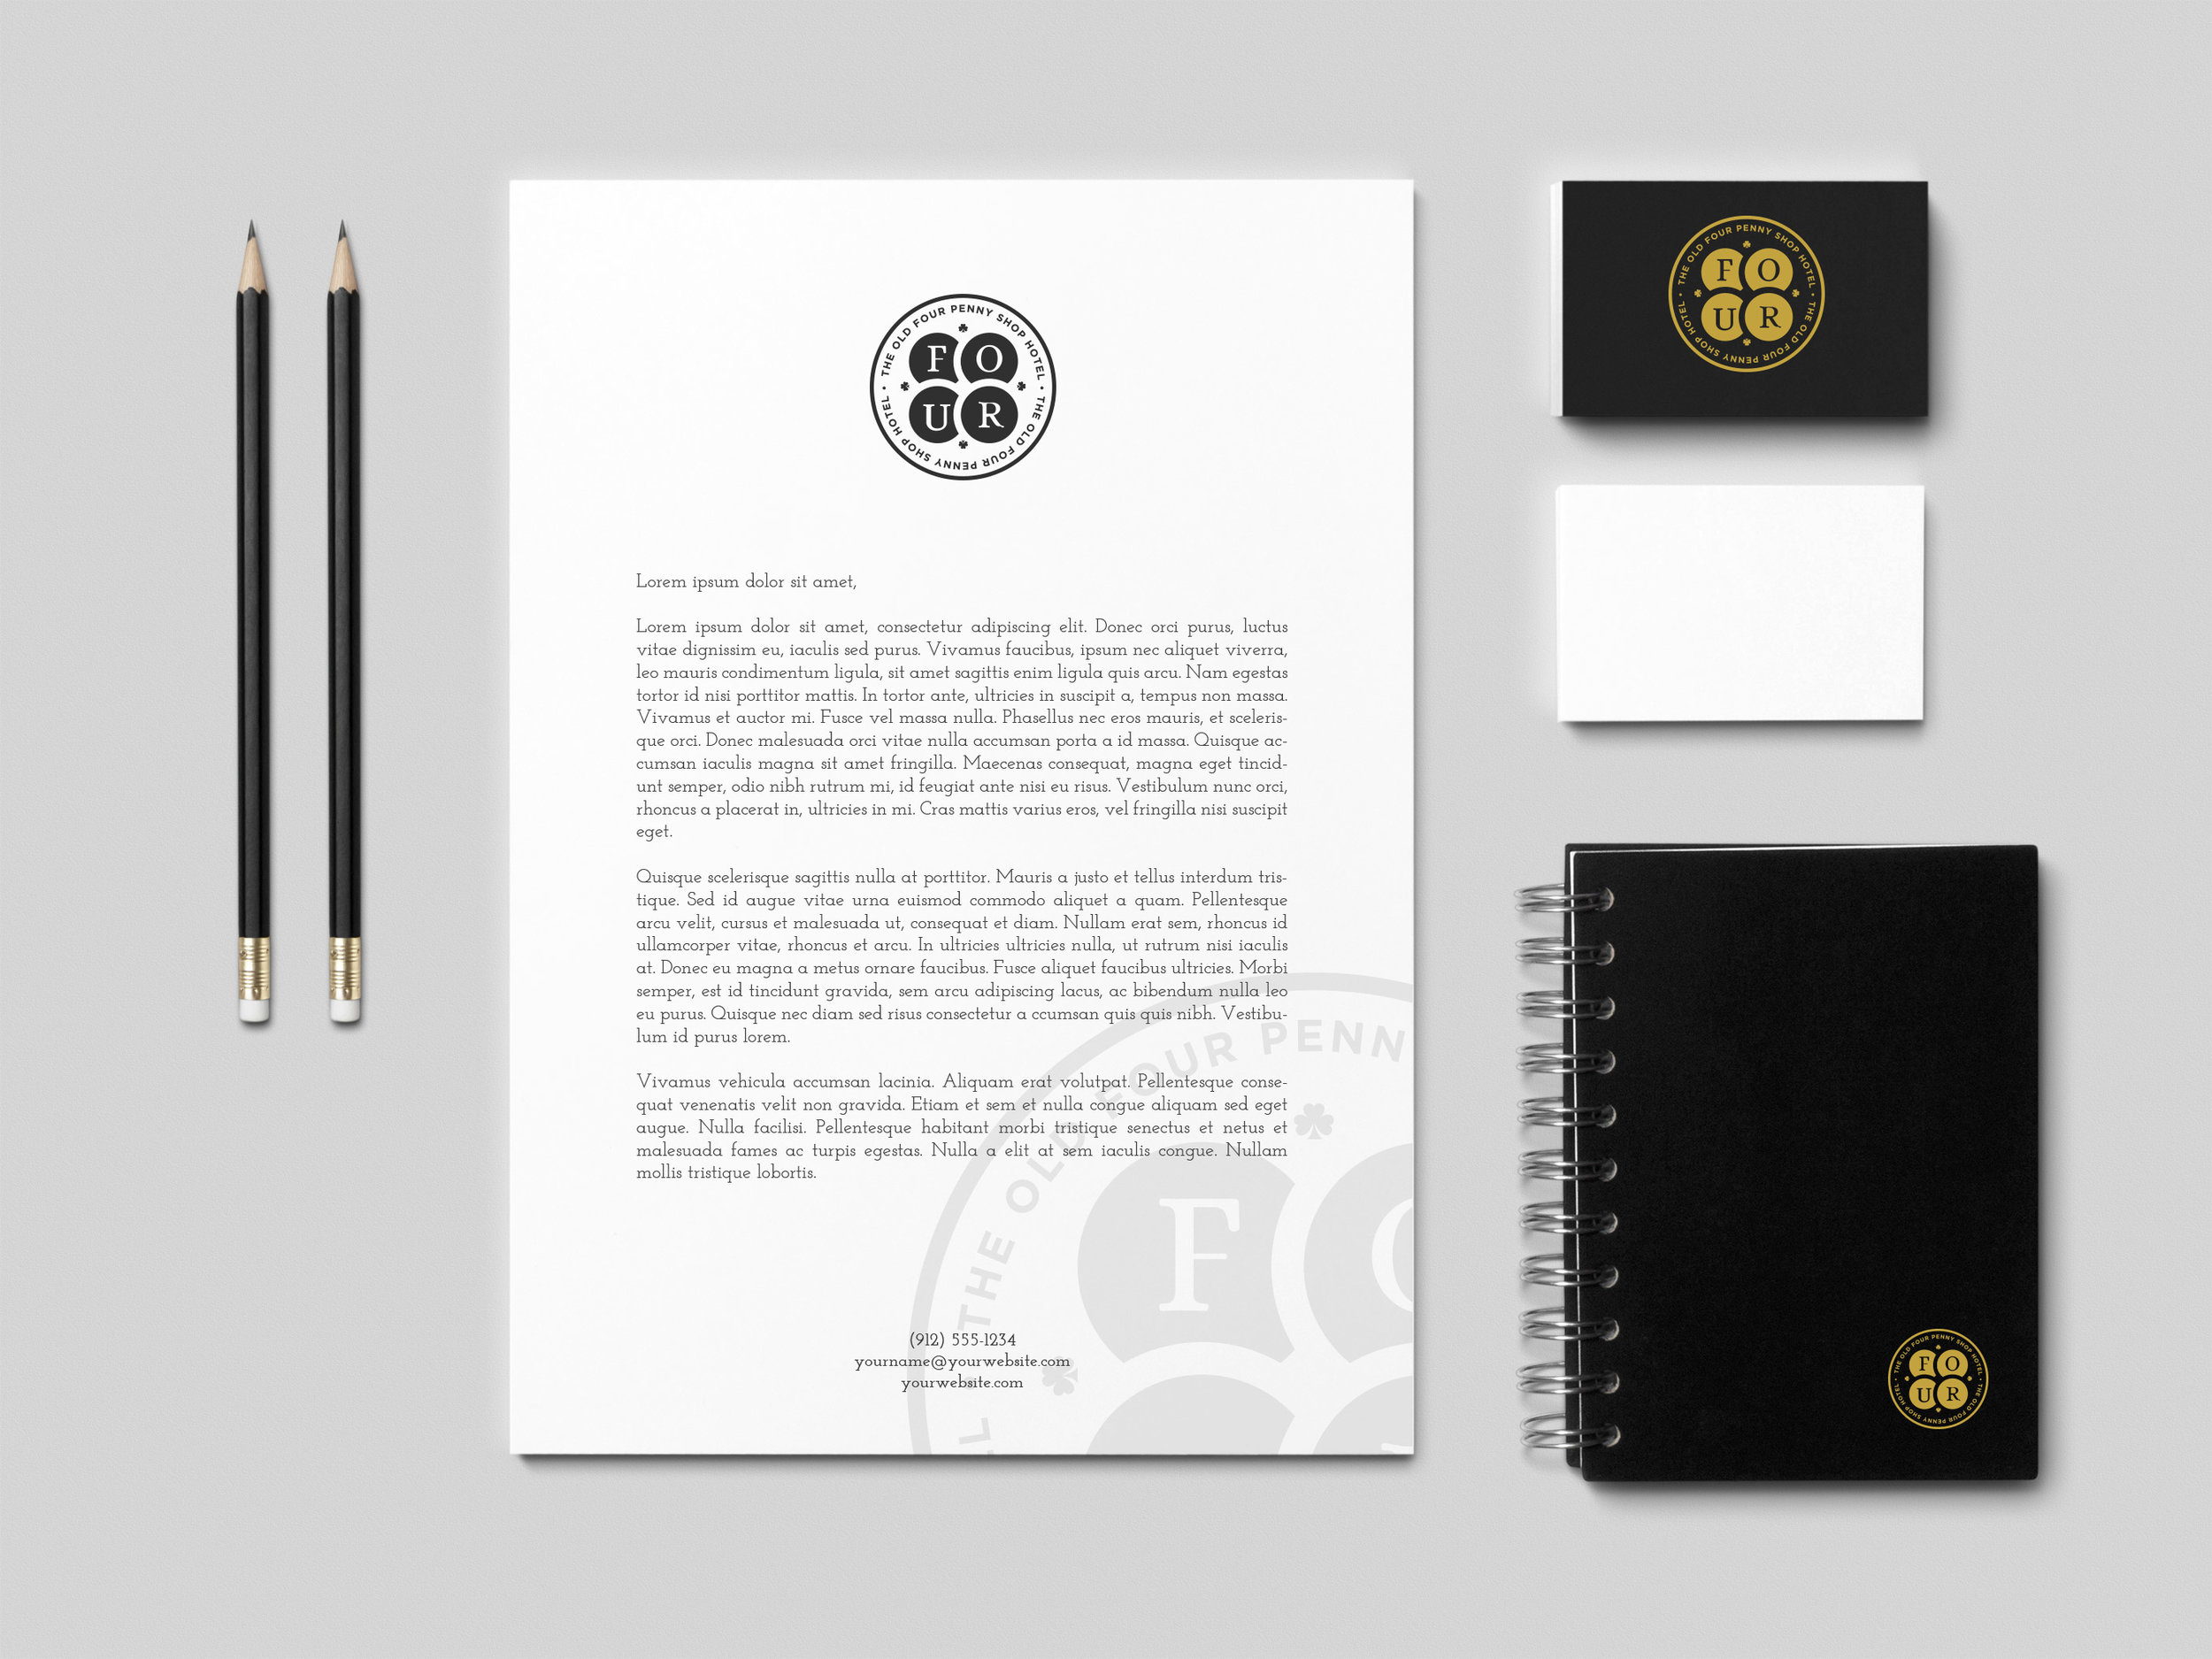 Black-&-White-Branding-Mock-Up.jpg